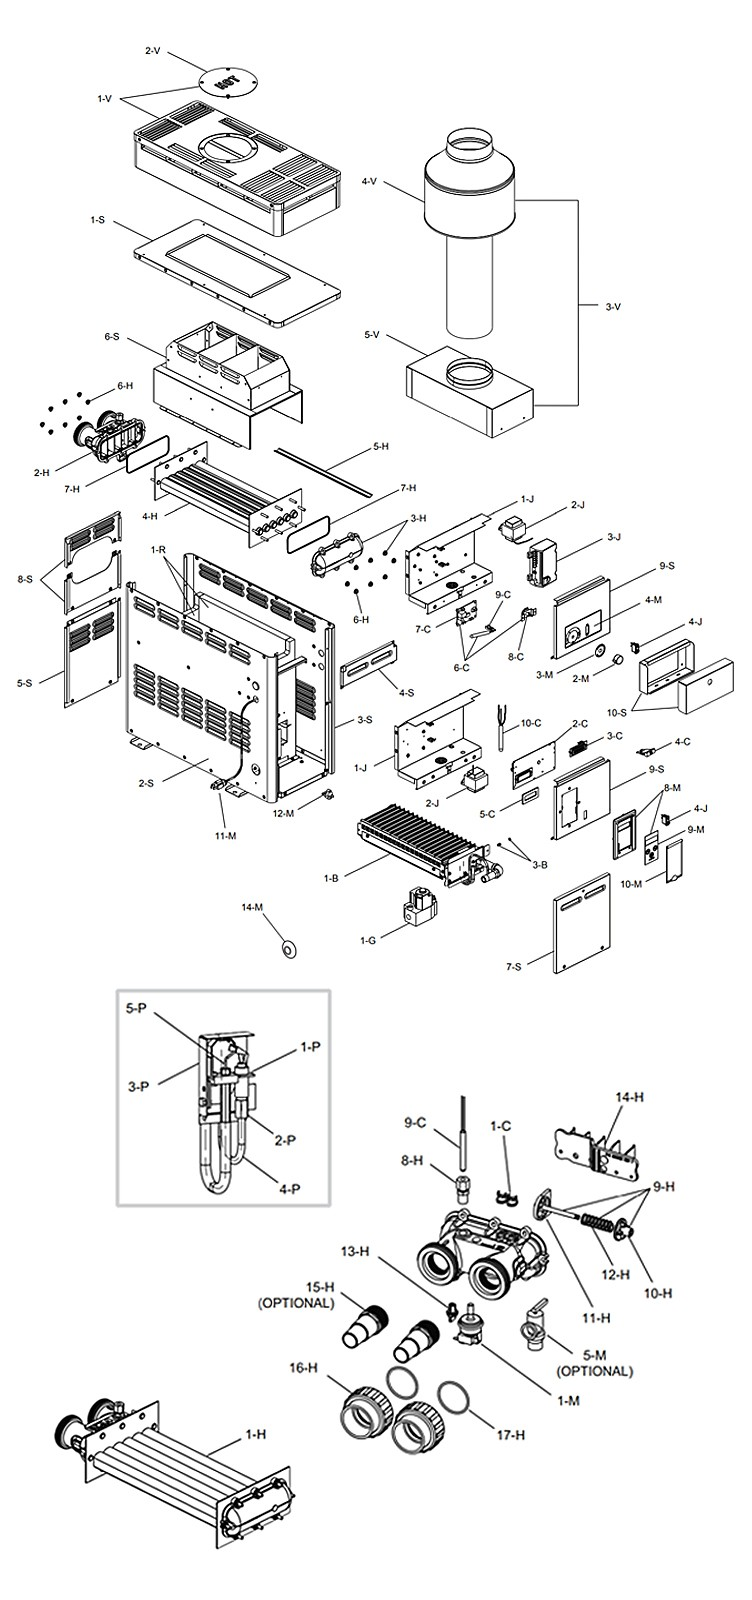 Raypak 106A Above Ground Pool & Spa Heater   Analog   Electronic Ignition   Propane Gas 105K BTU   High Altitude 2000-3999 Feet   P-M106A-AP-C 014800 P-R106A-AP-C 014782 Parts Schematic